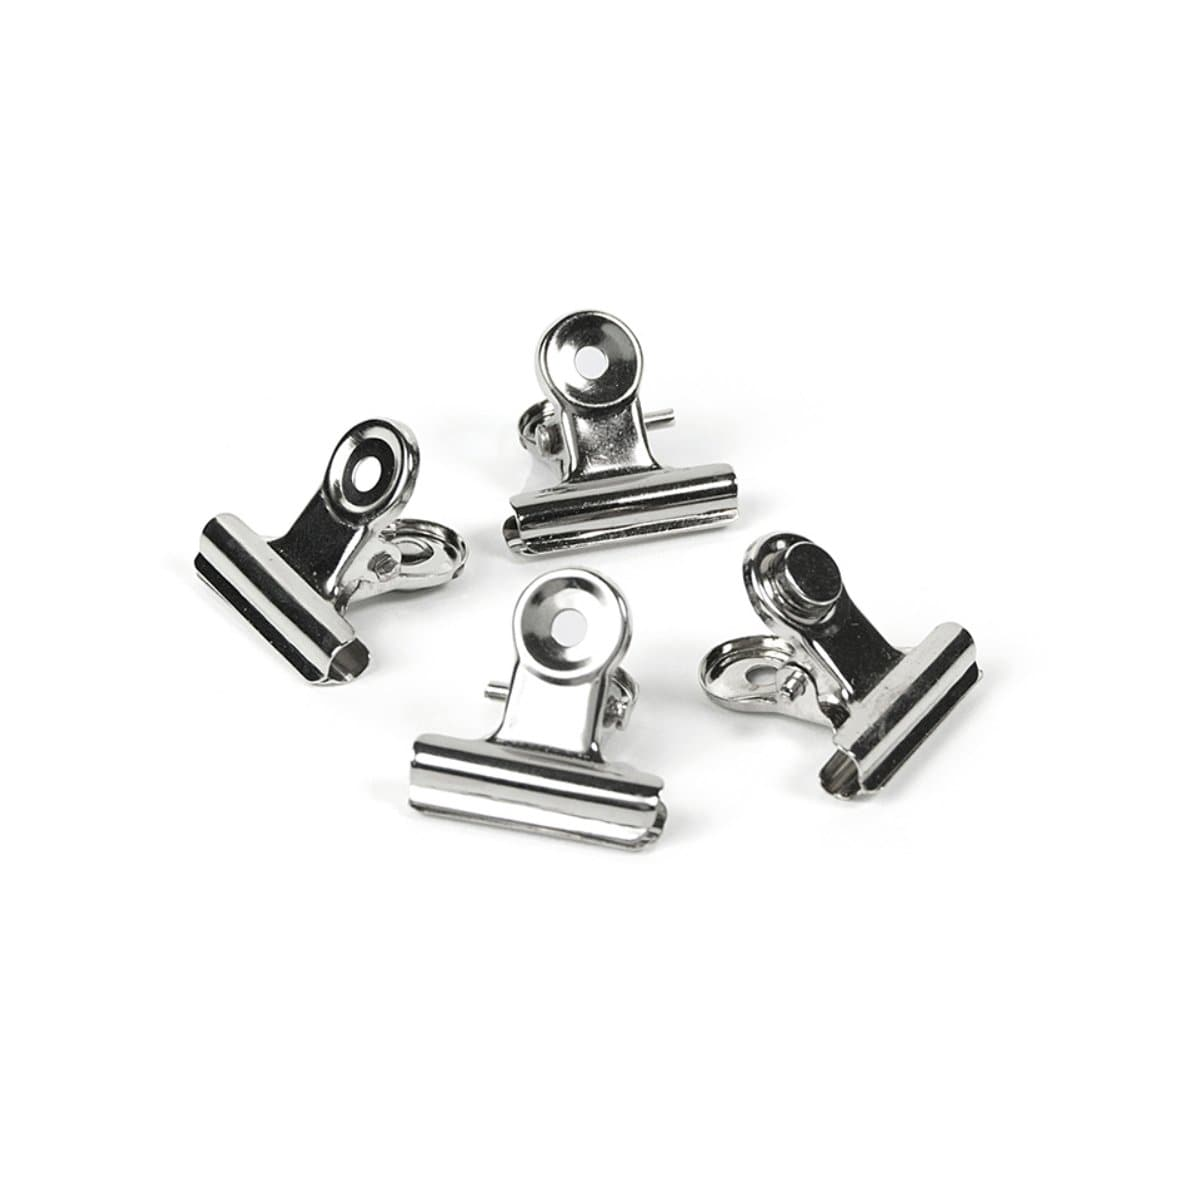 Trendform Magnetic Clip MINI-GRAFFA, 4/pack, Chrome Plated